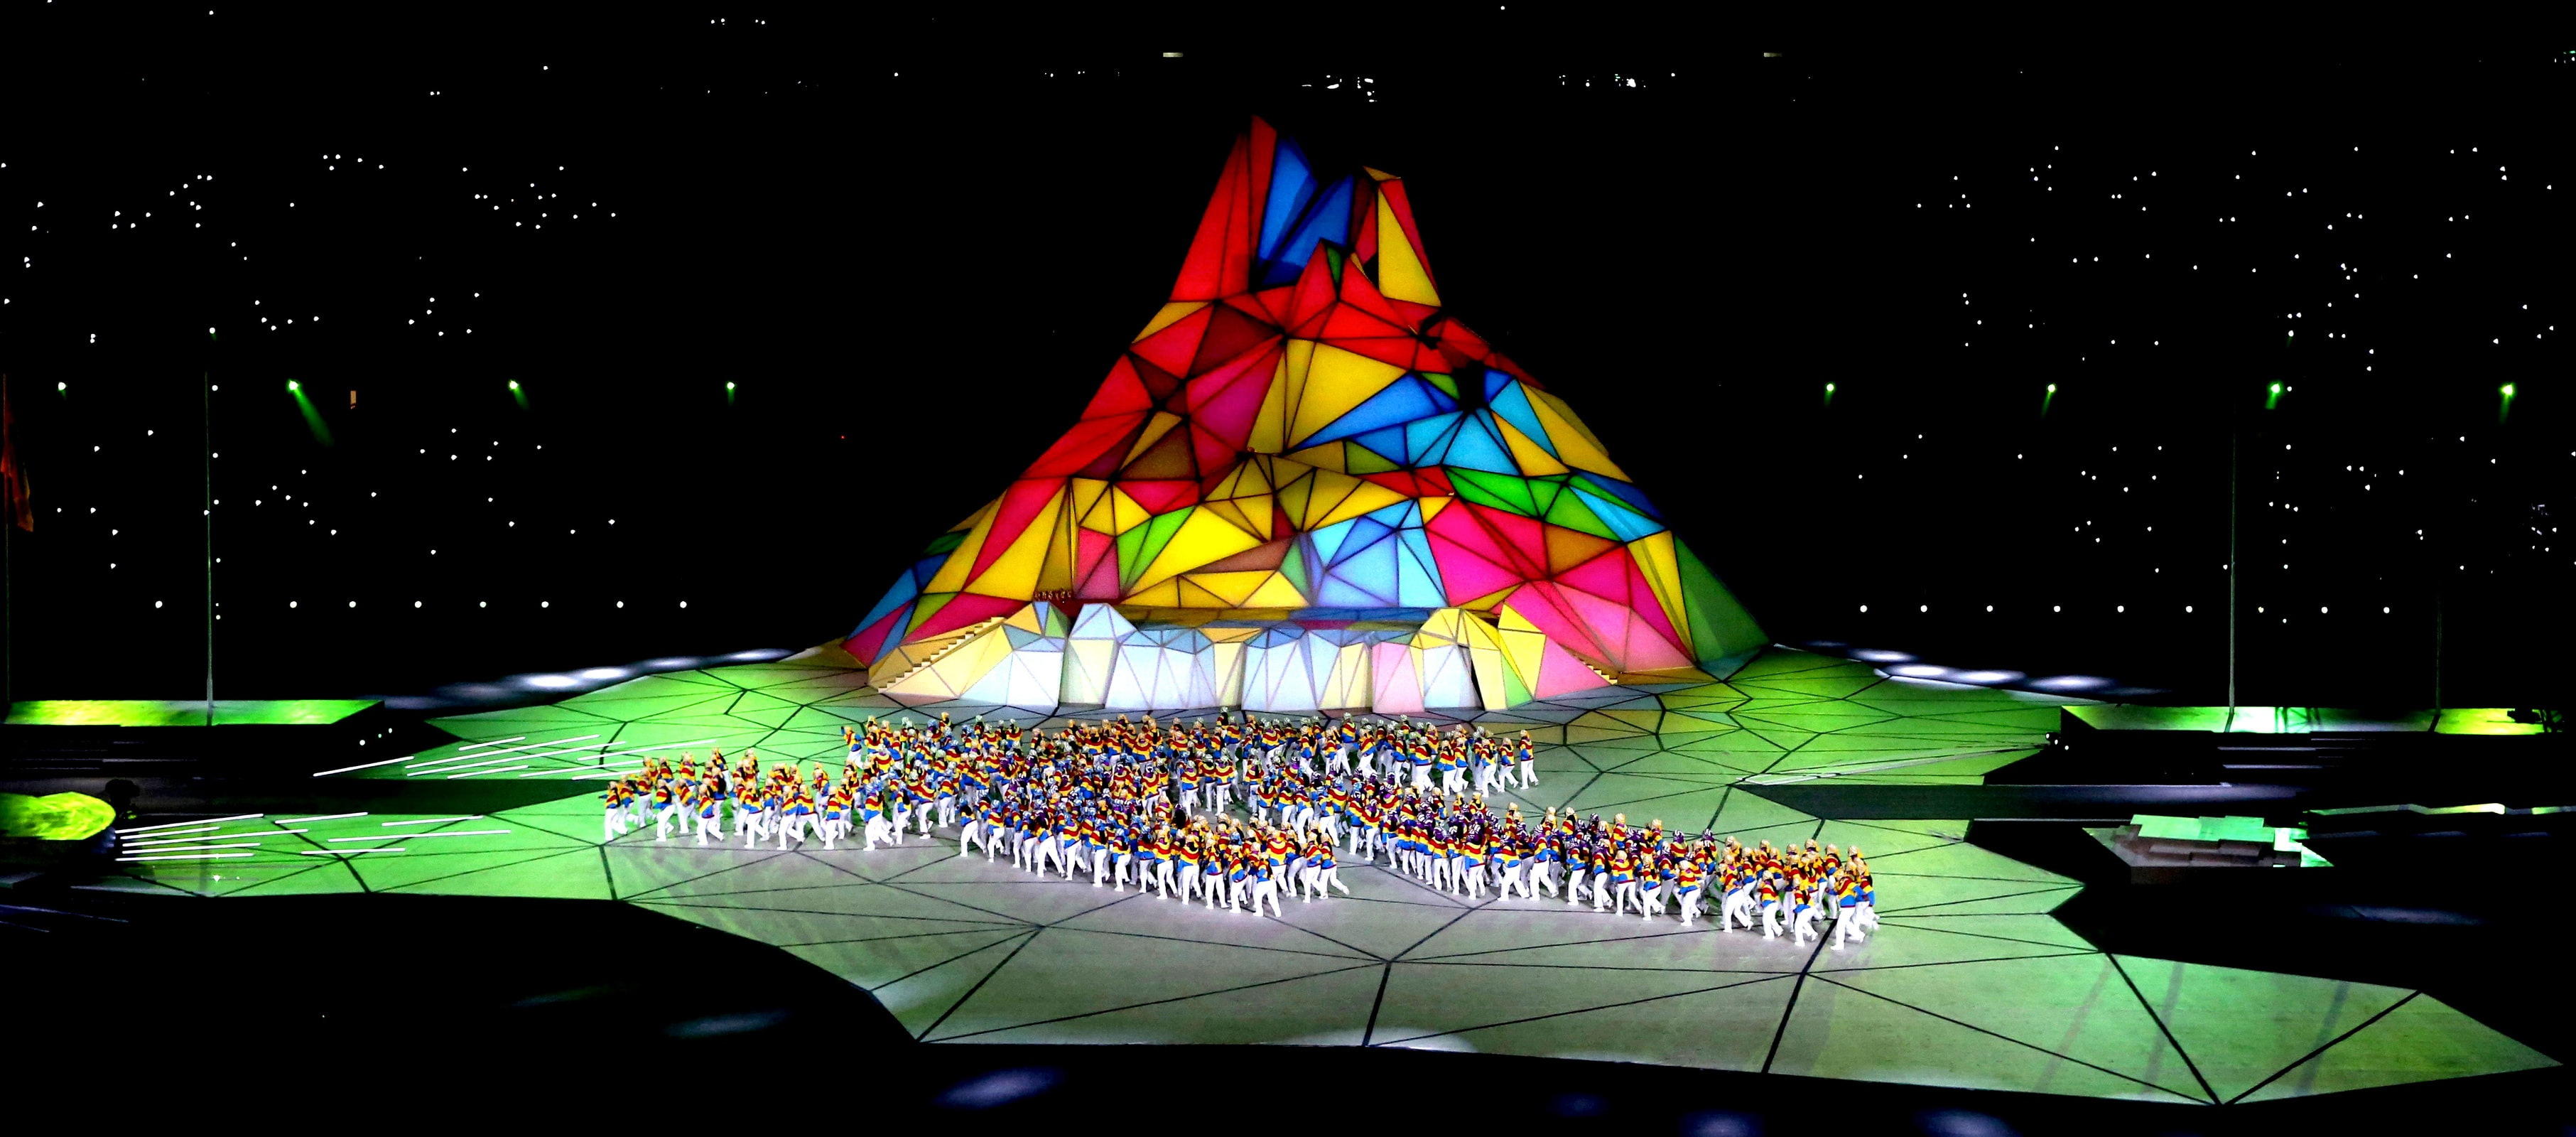 Luke Halls Studio — Pan American Games Opening Ceremony